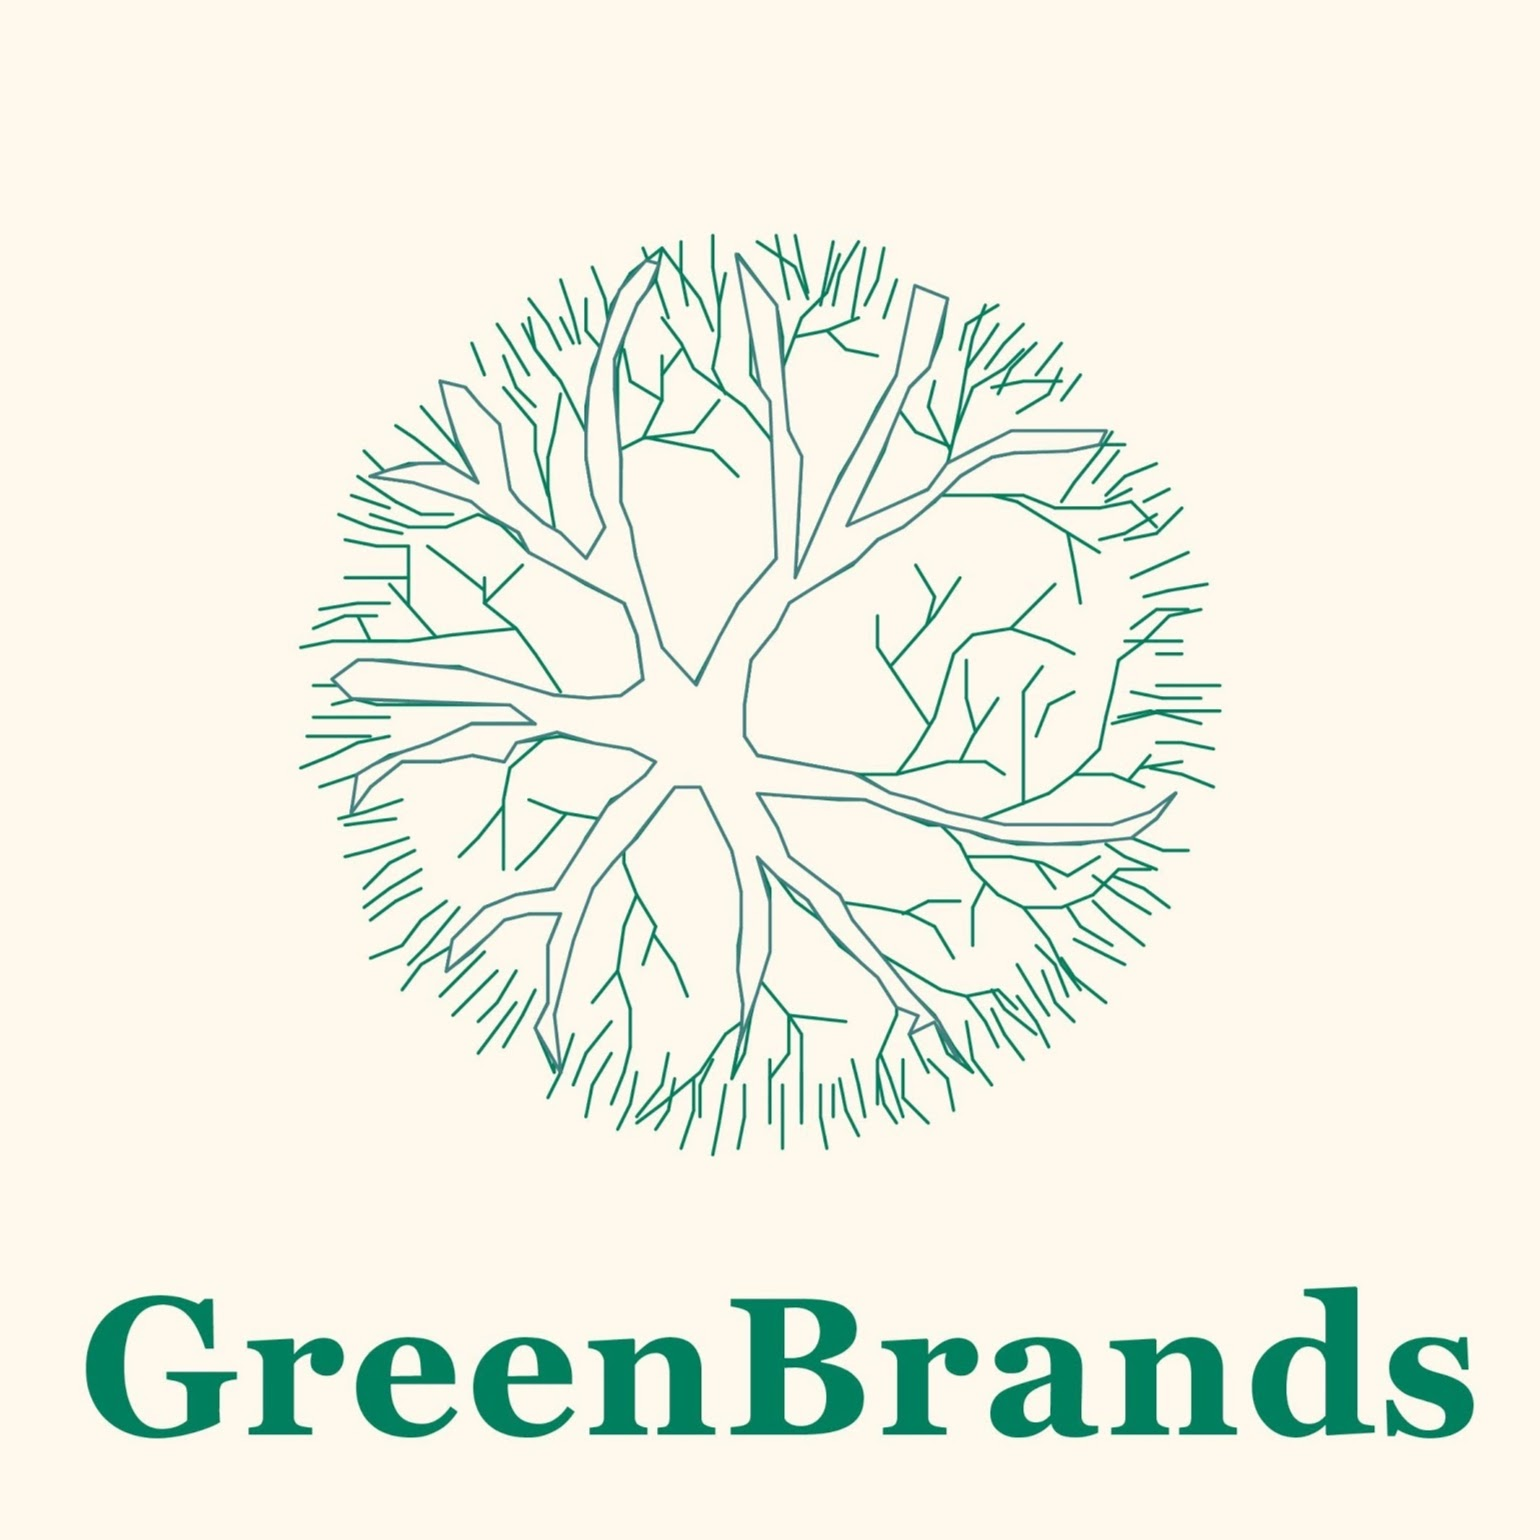 Greenbrands (GreenBrands)